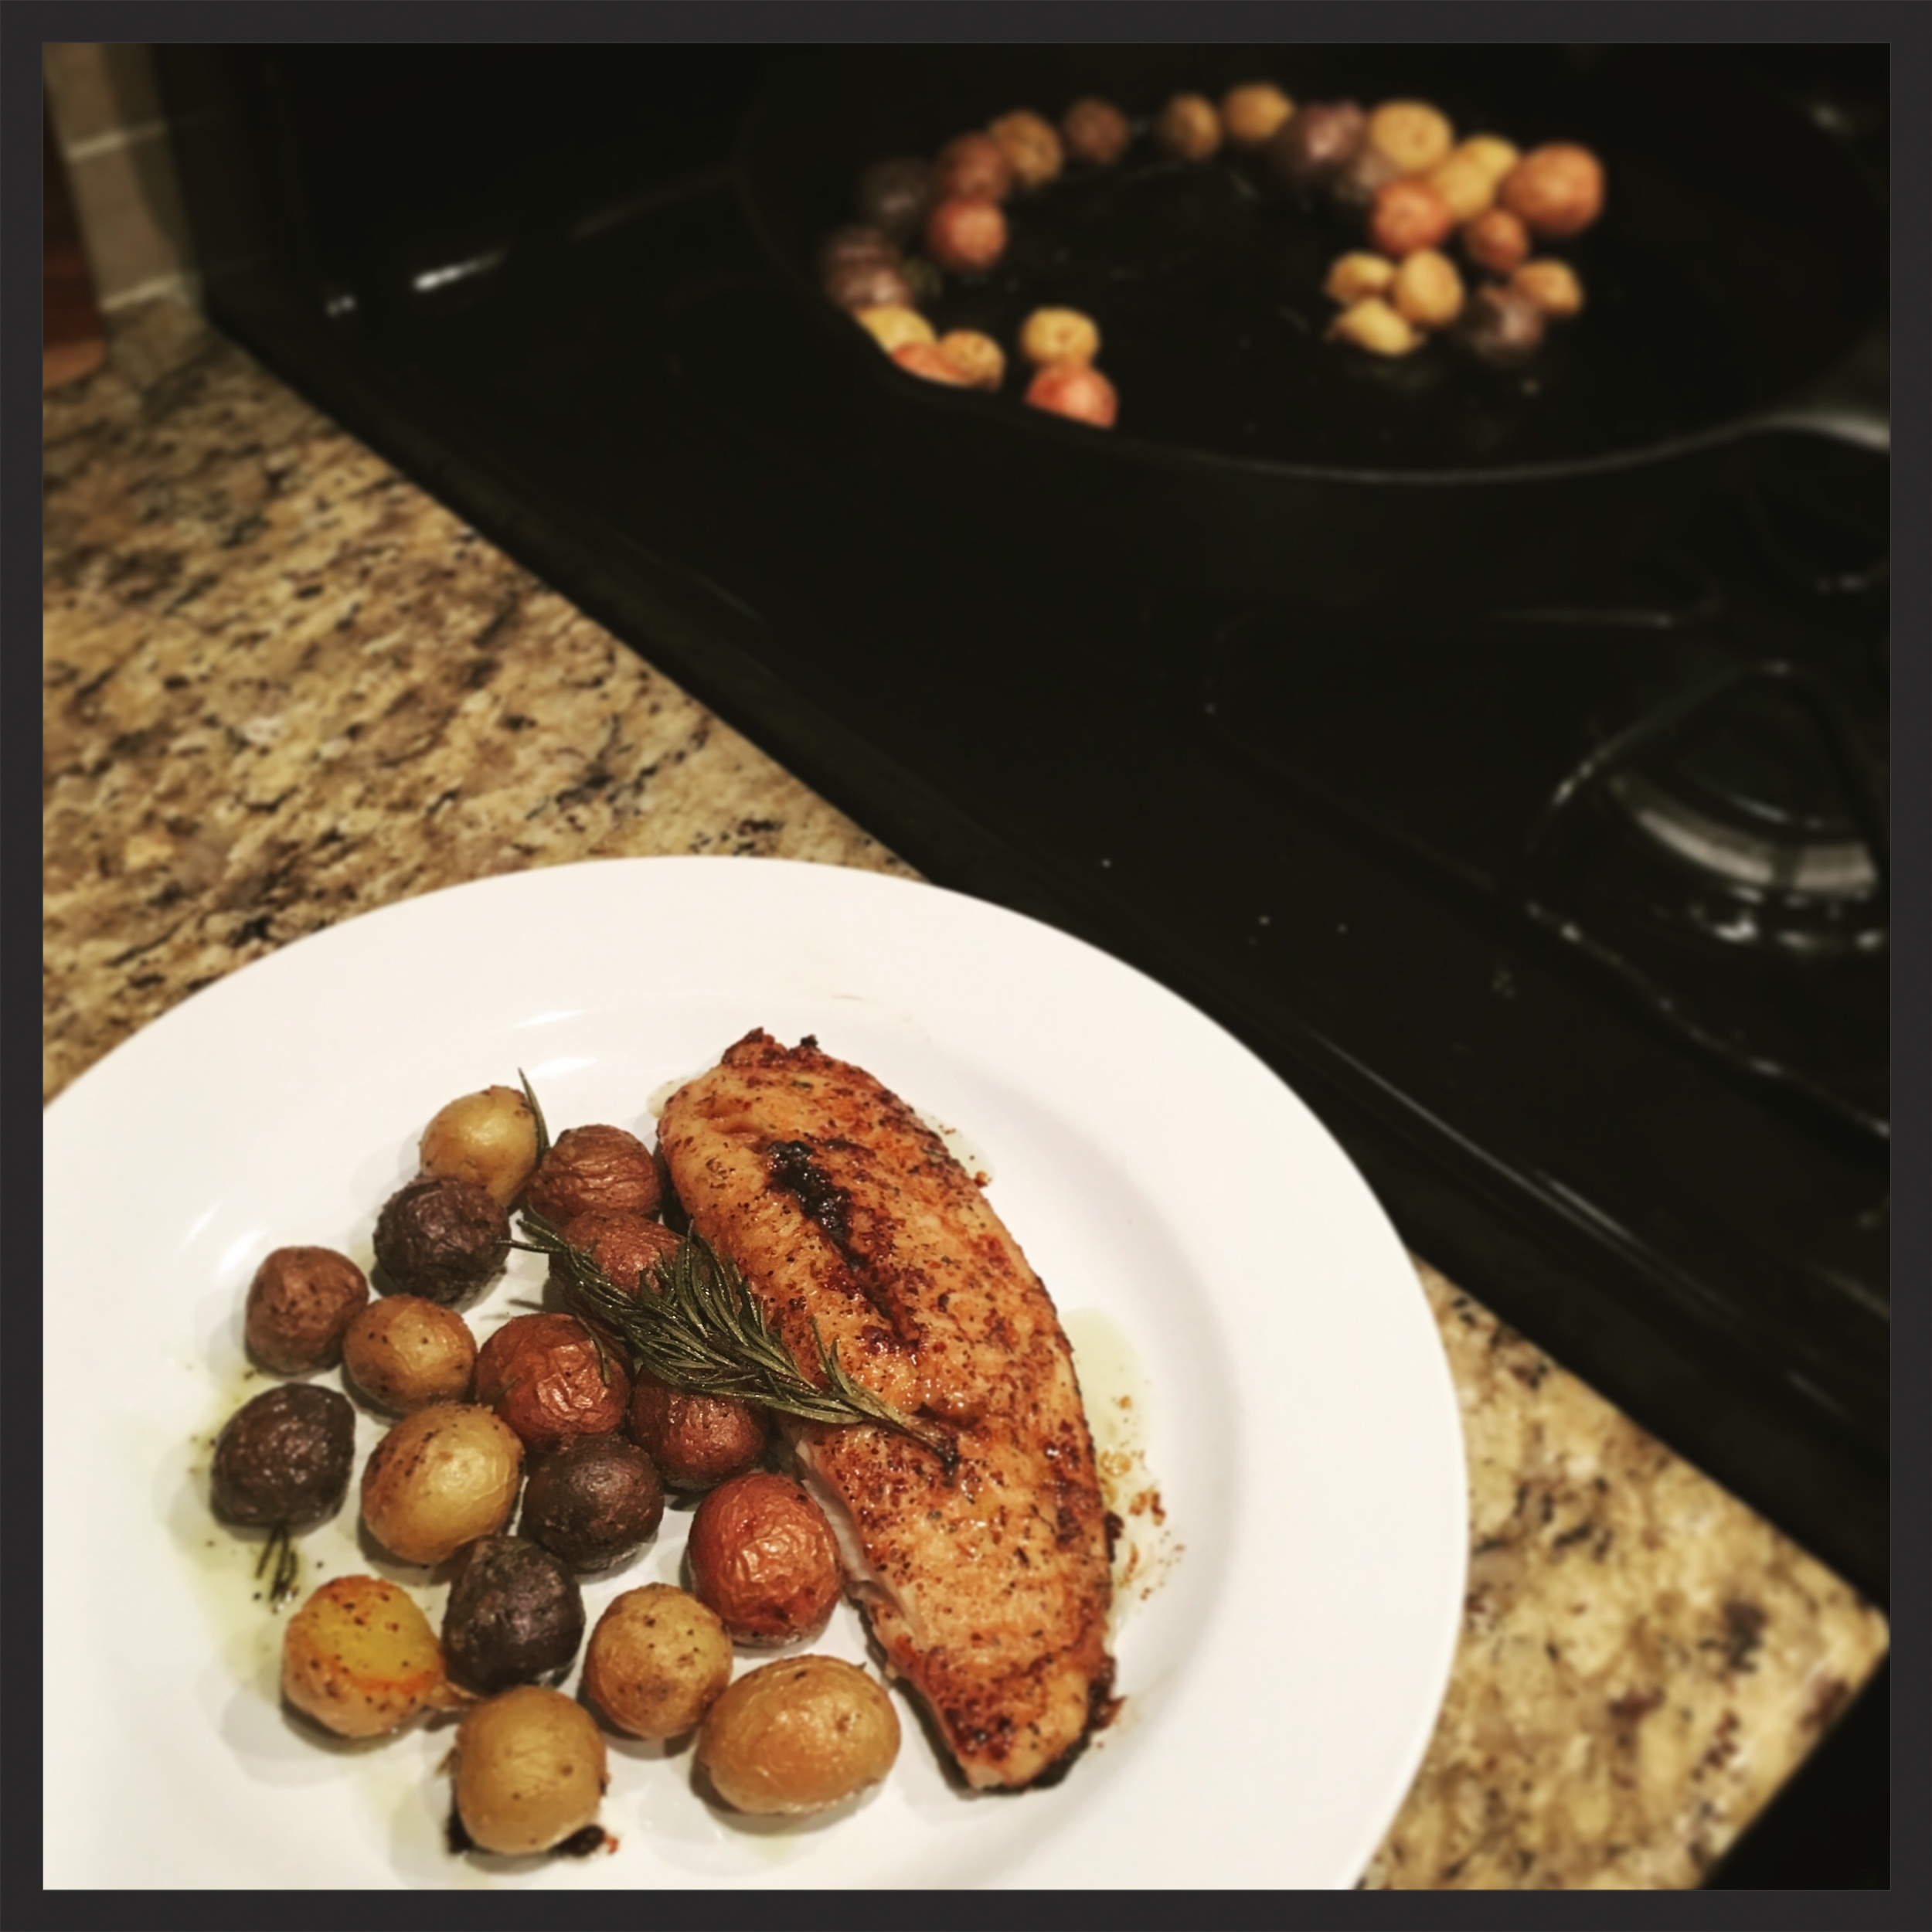 Above potatoes plated with garlic-soy baked tilapia.